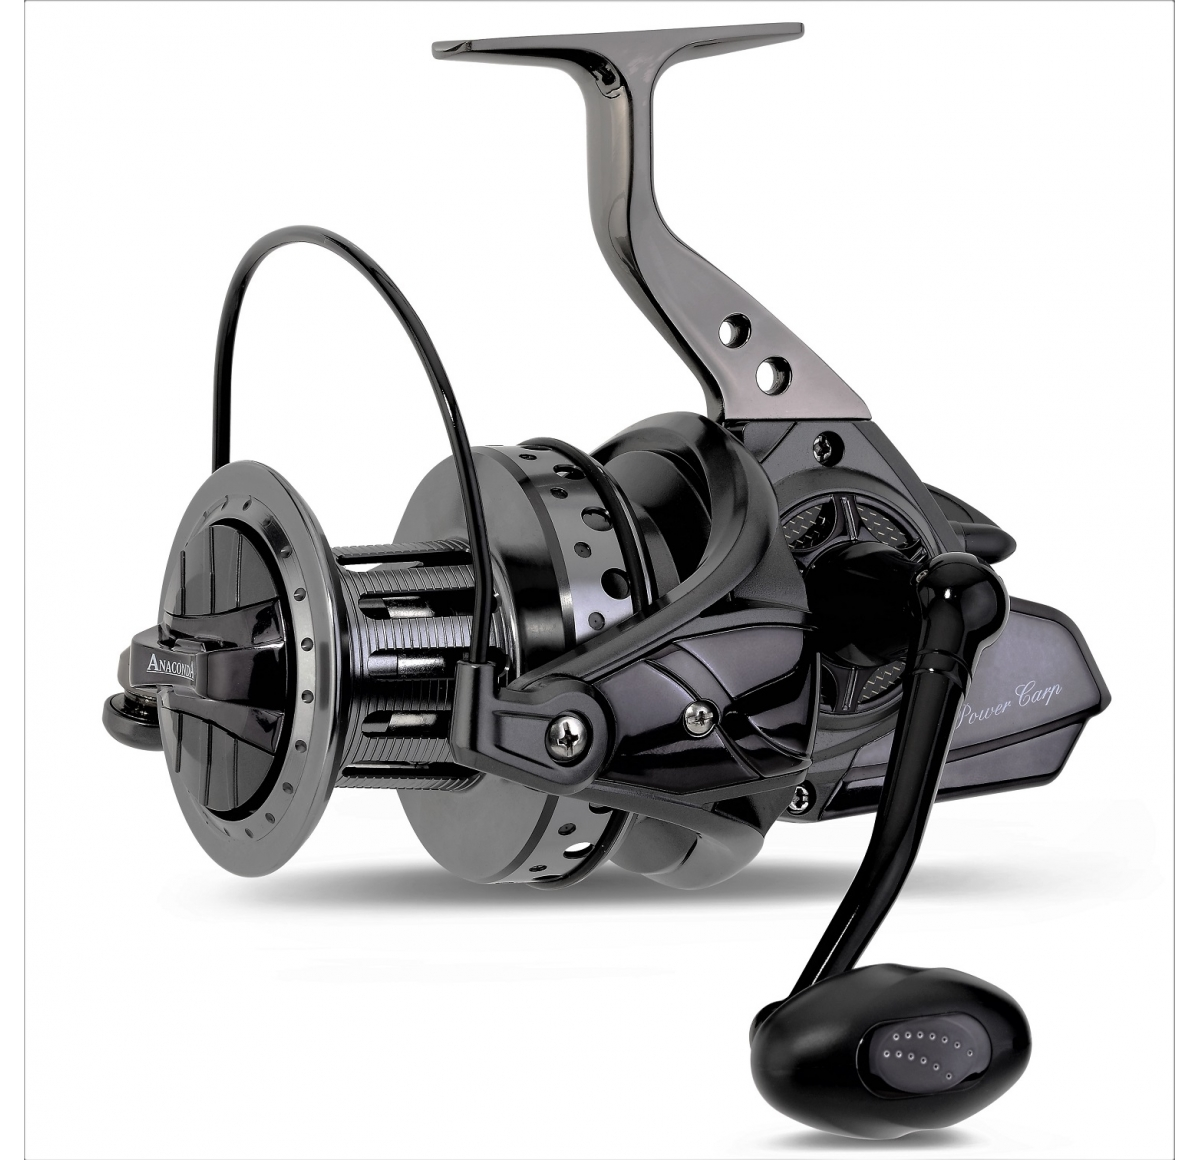 Anaconda Power Carp LC 14000